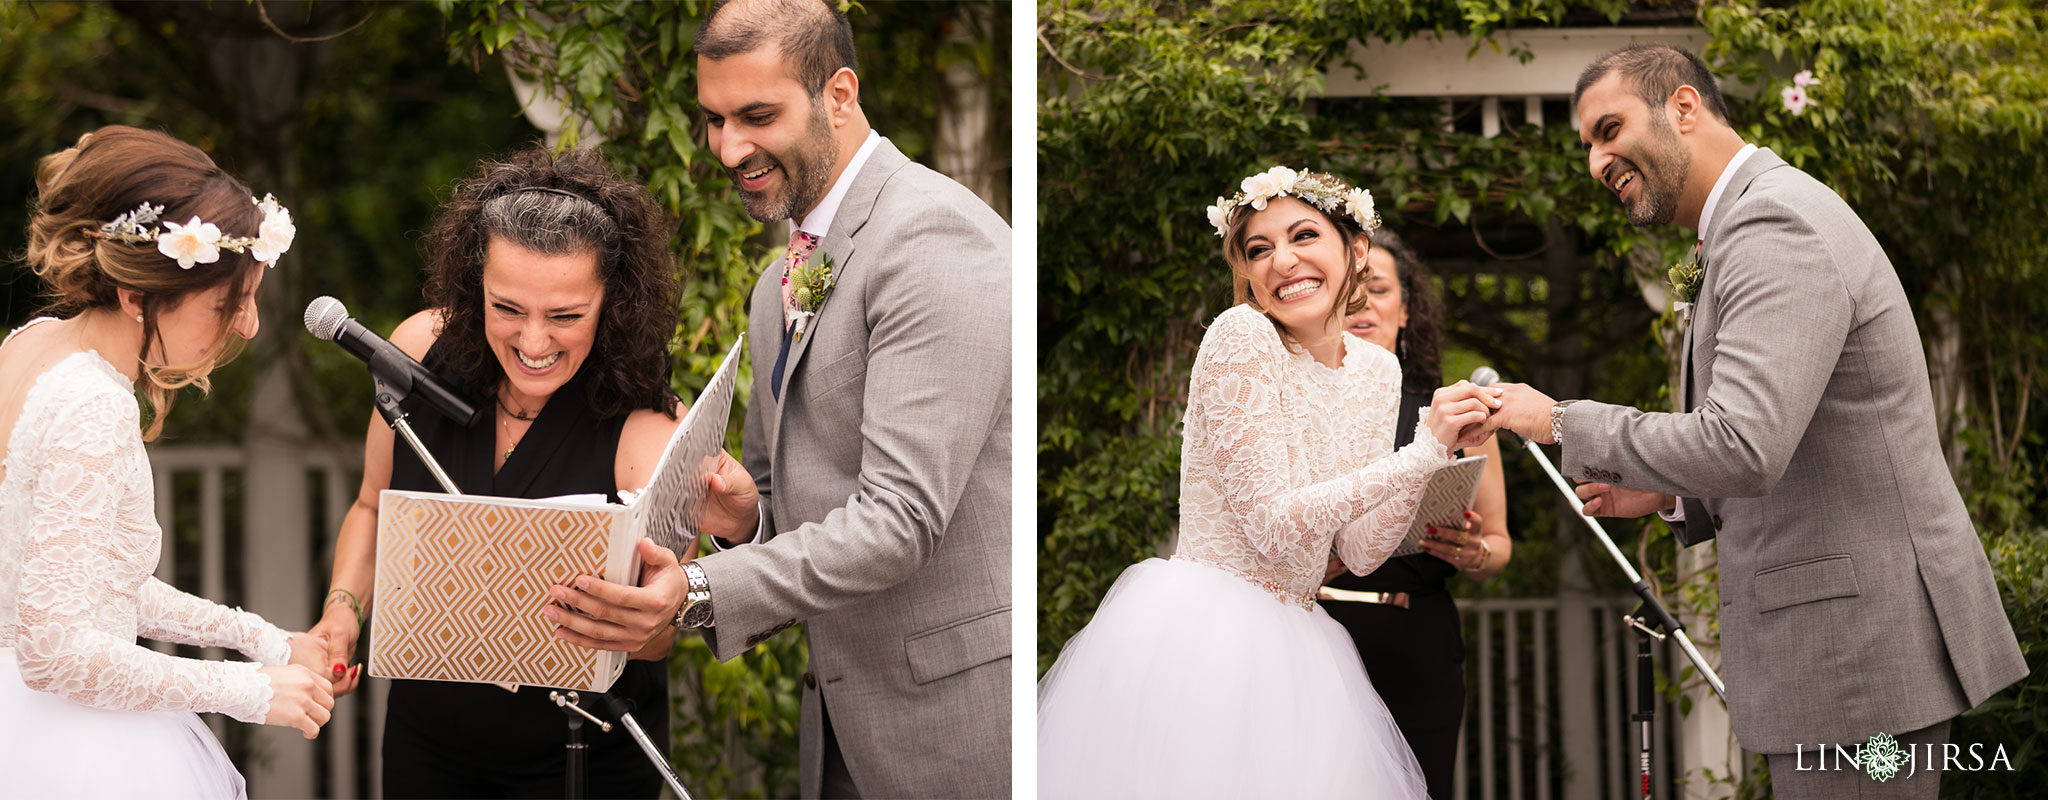 21 carmel mountain ranch san diego pakistani persian muslim wedding ceremony photography